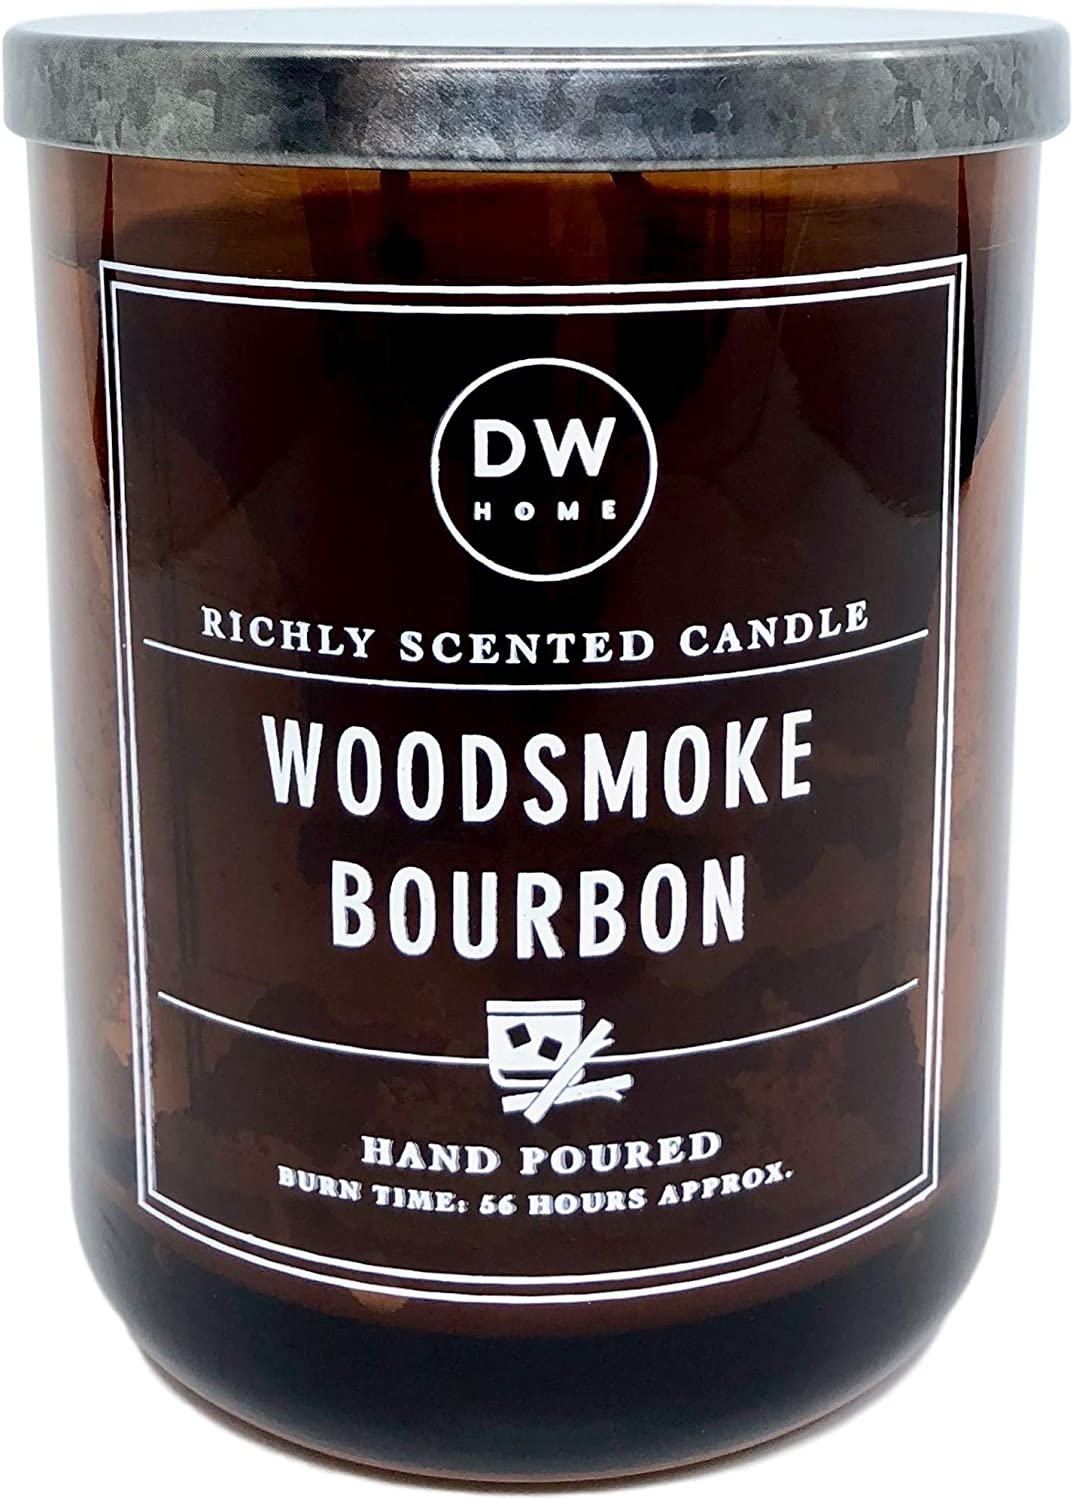 DW Home Large Woodsmoke Bourbon Scented Candle